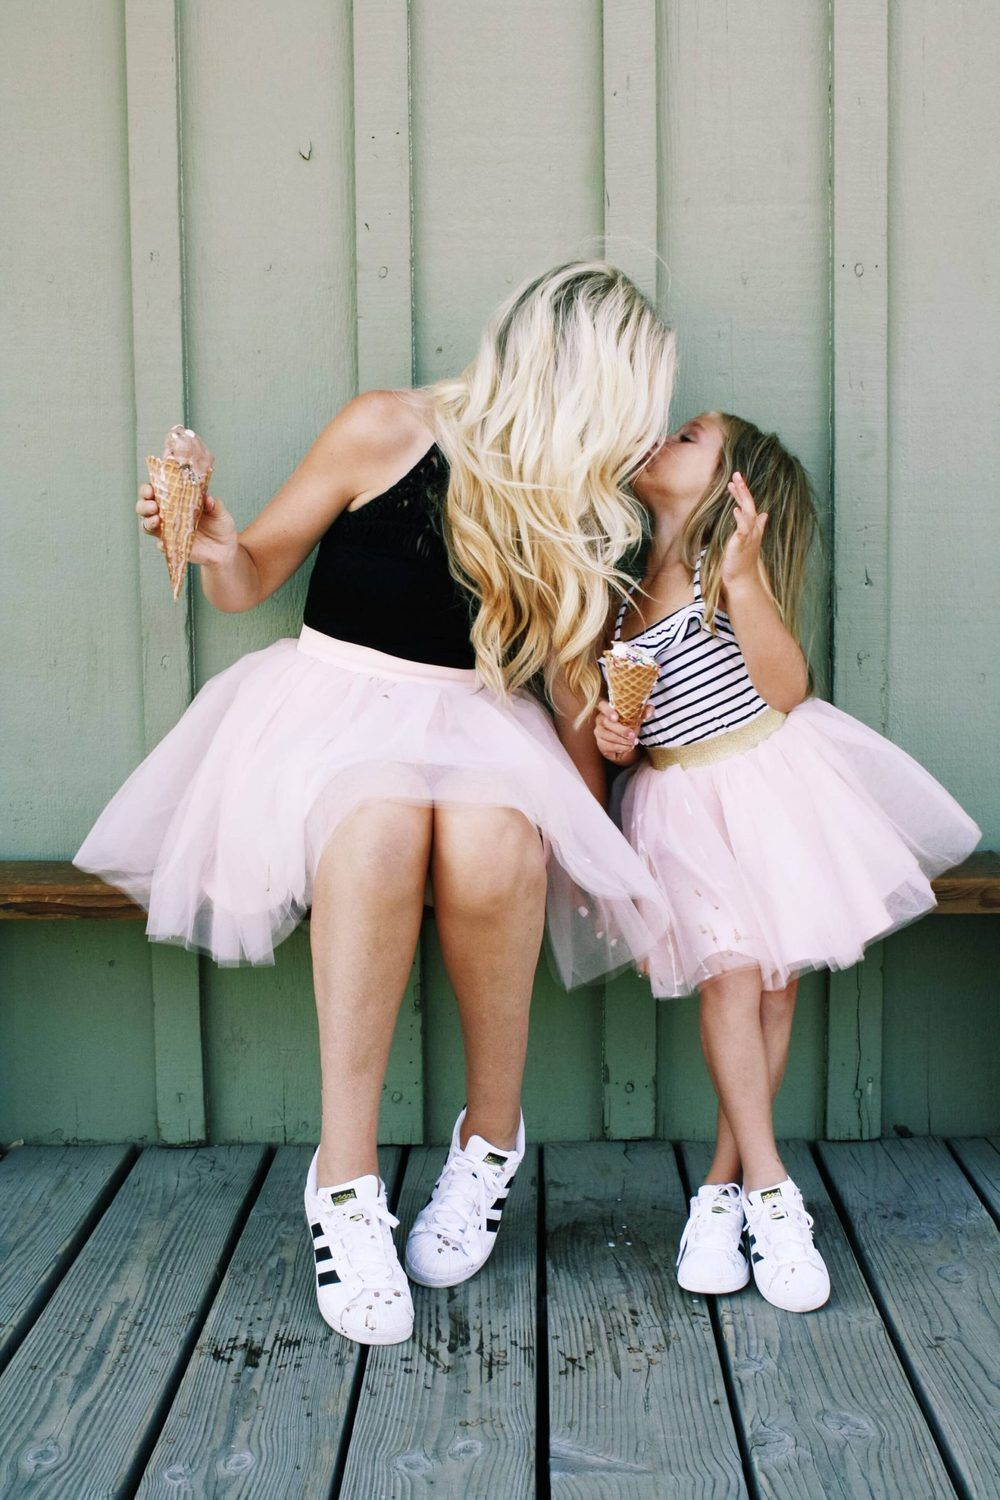 Last-Minute Mothers Day Gifts That Dont Suck - Matching Mother Daughter  Outfits Adidas Superstar Sneakers White And Black Striped And Baby Pink  Tulle Skirts